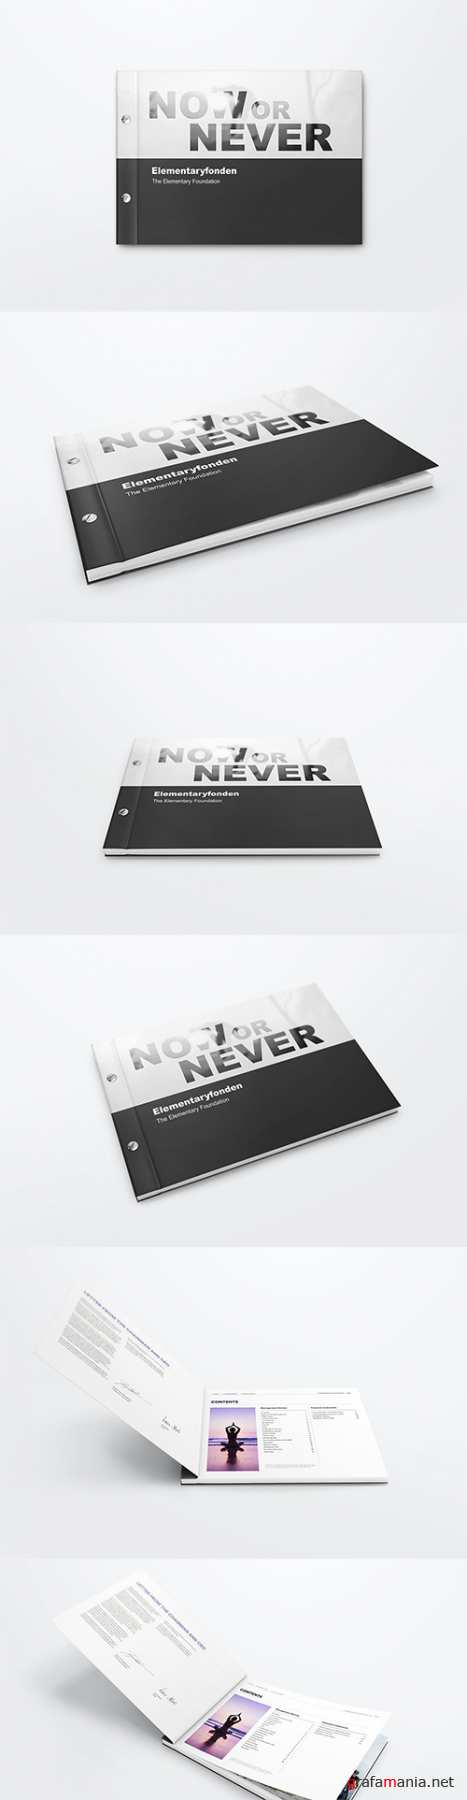 Screw Bound Book Mockups